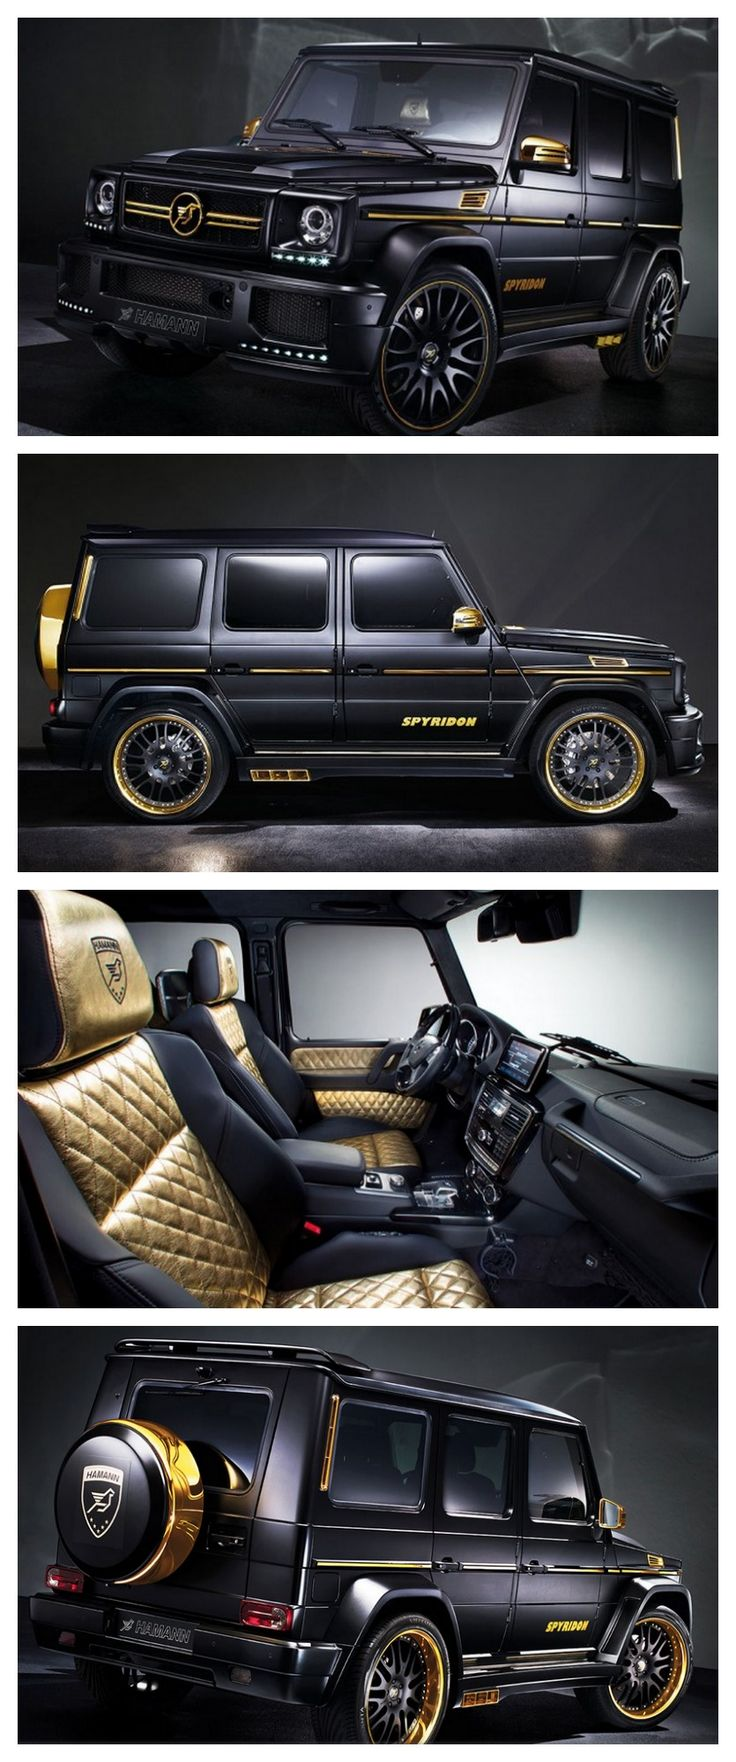 1000 images about mercedes g wagon dreams on pinterest for Mercedes benz g wagon v12